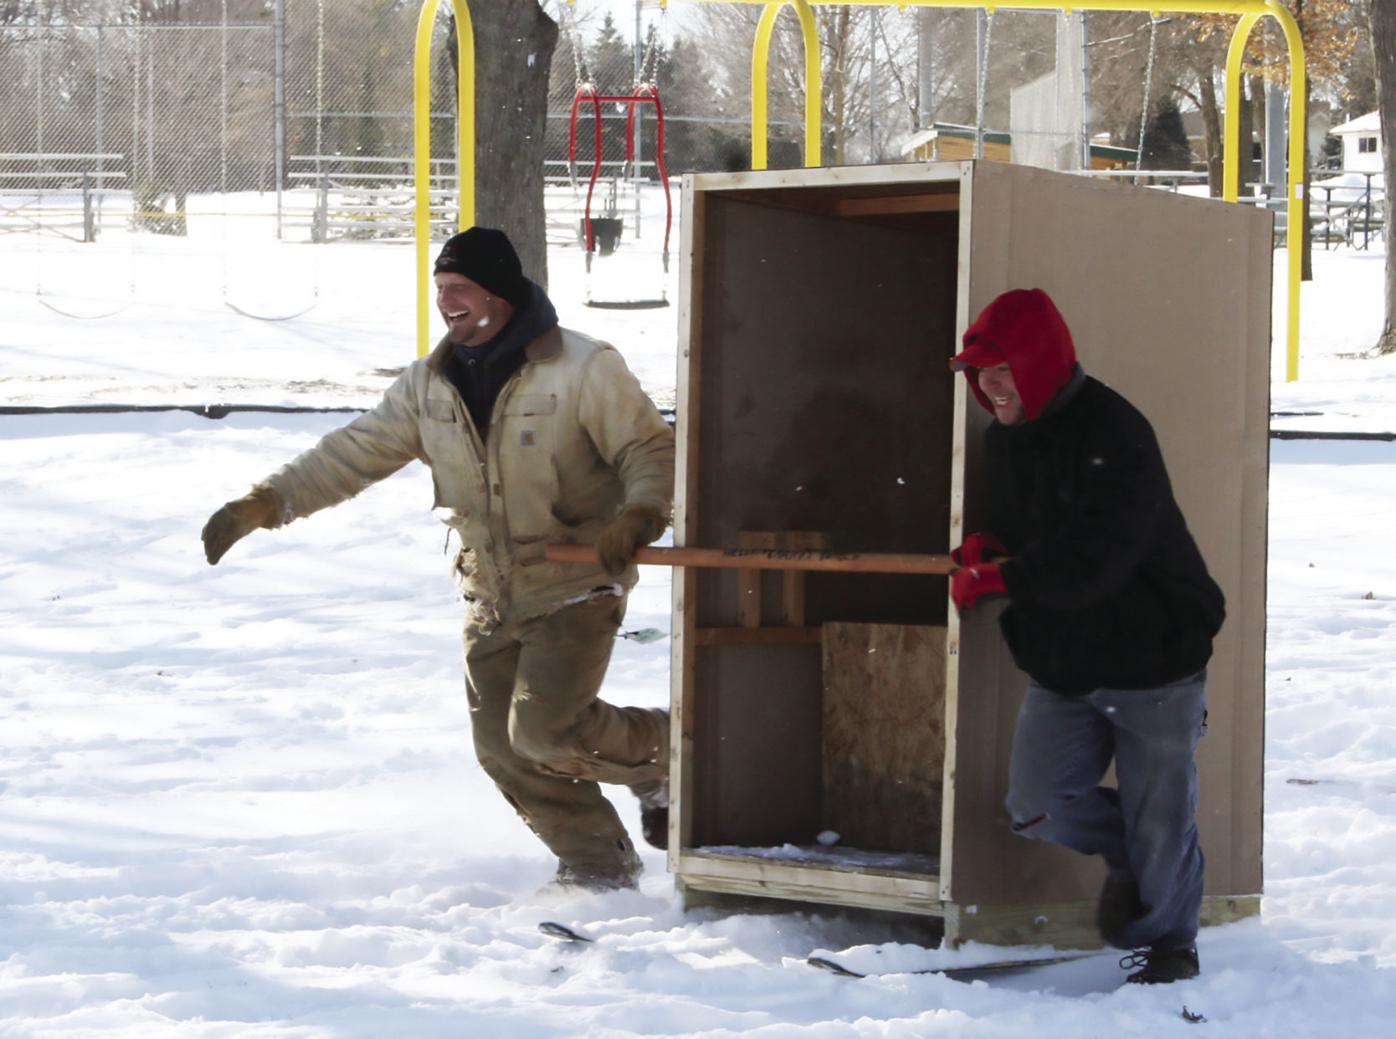 Outhouse races